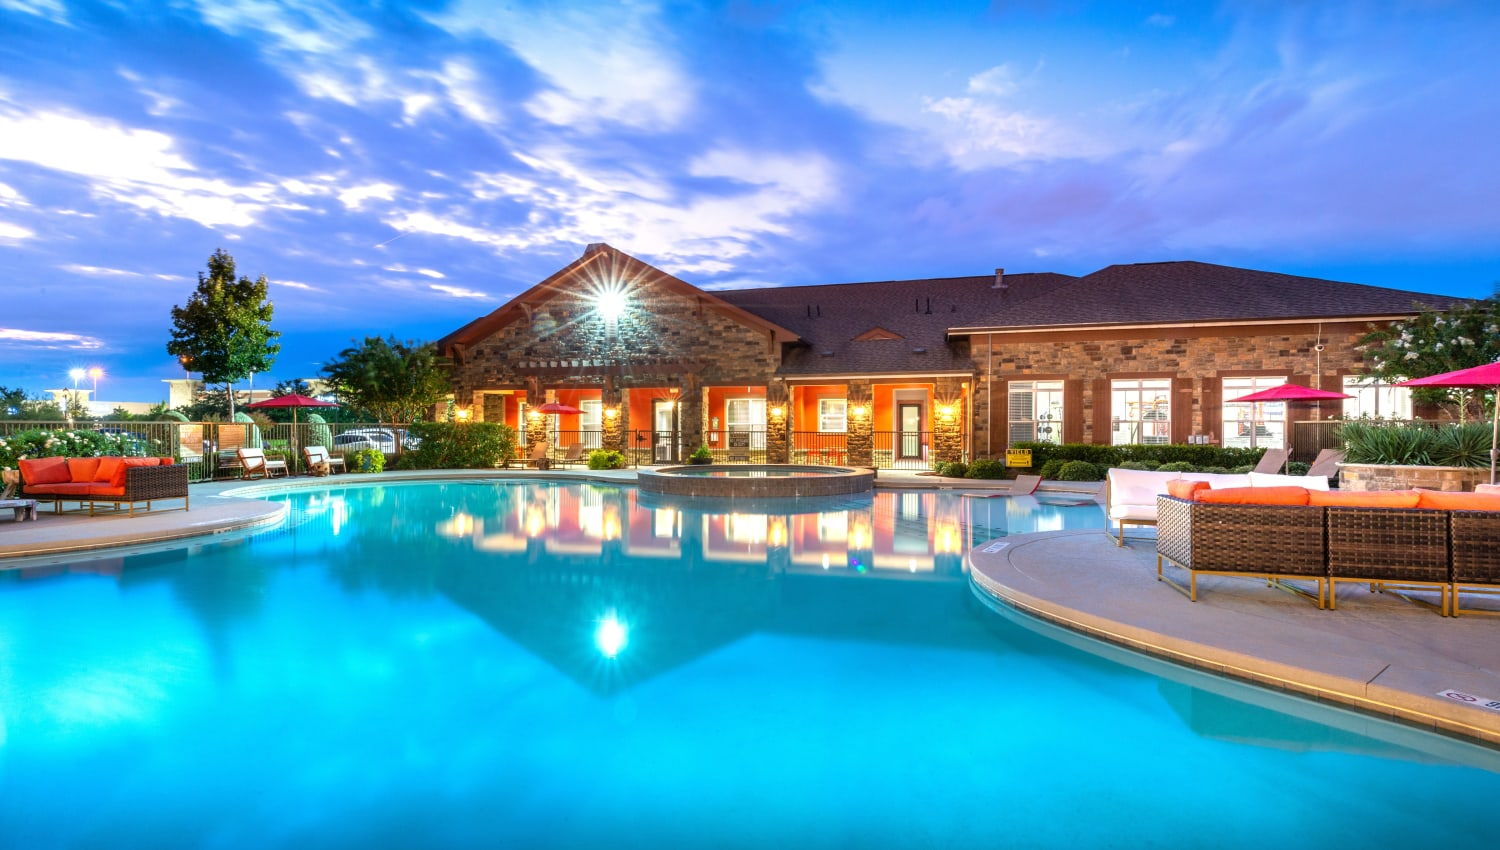 Spacious blue pool at Olympus Katy Ranch in Katy, TX